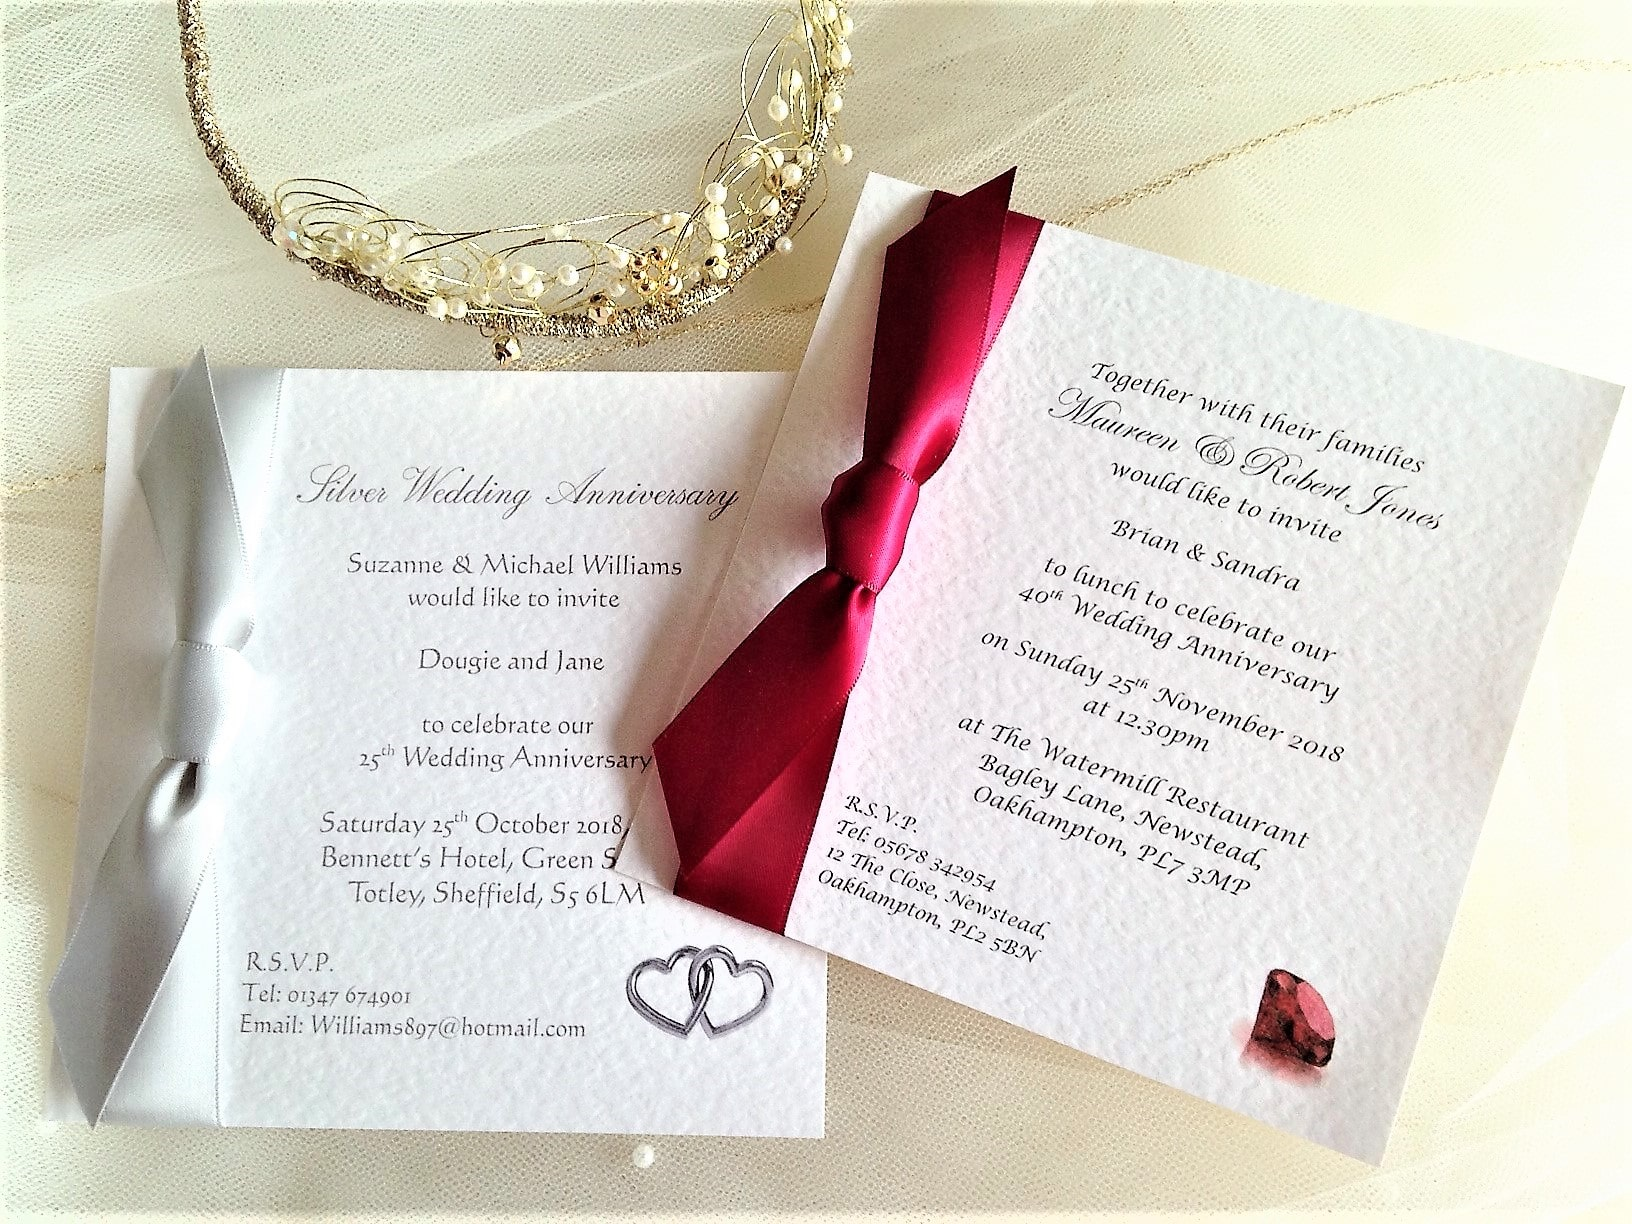 Square Wedding Anniversary Invitations with Ribbon